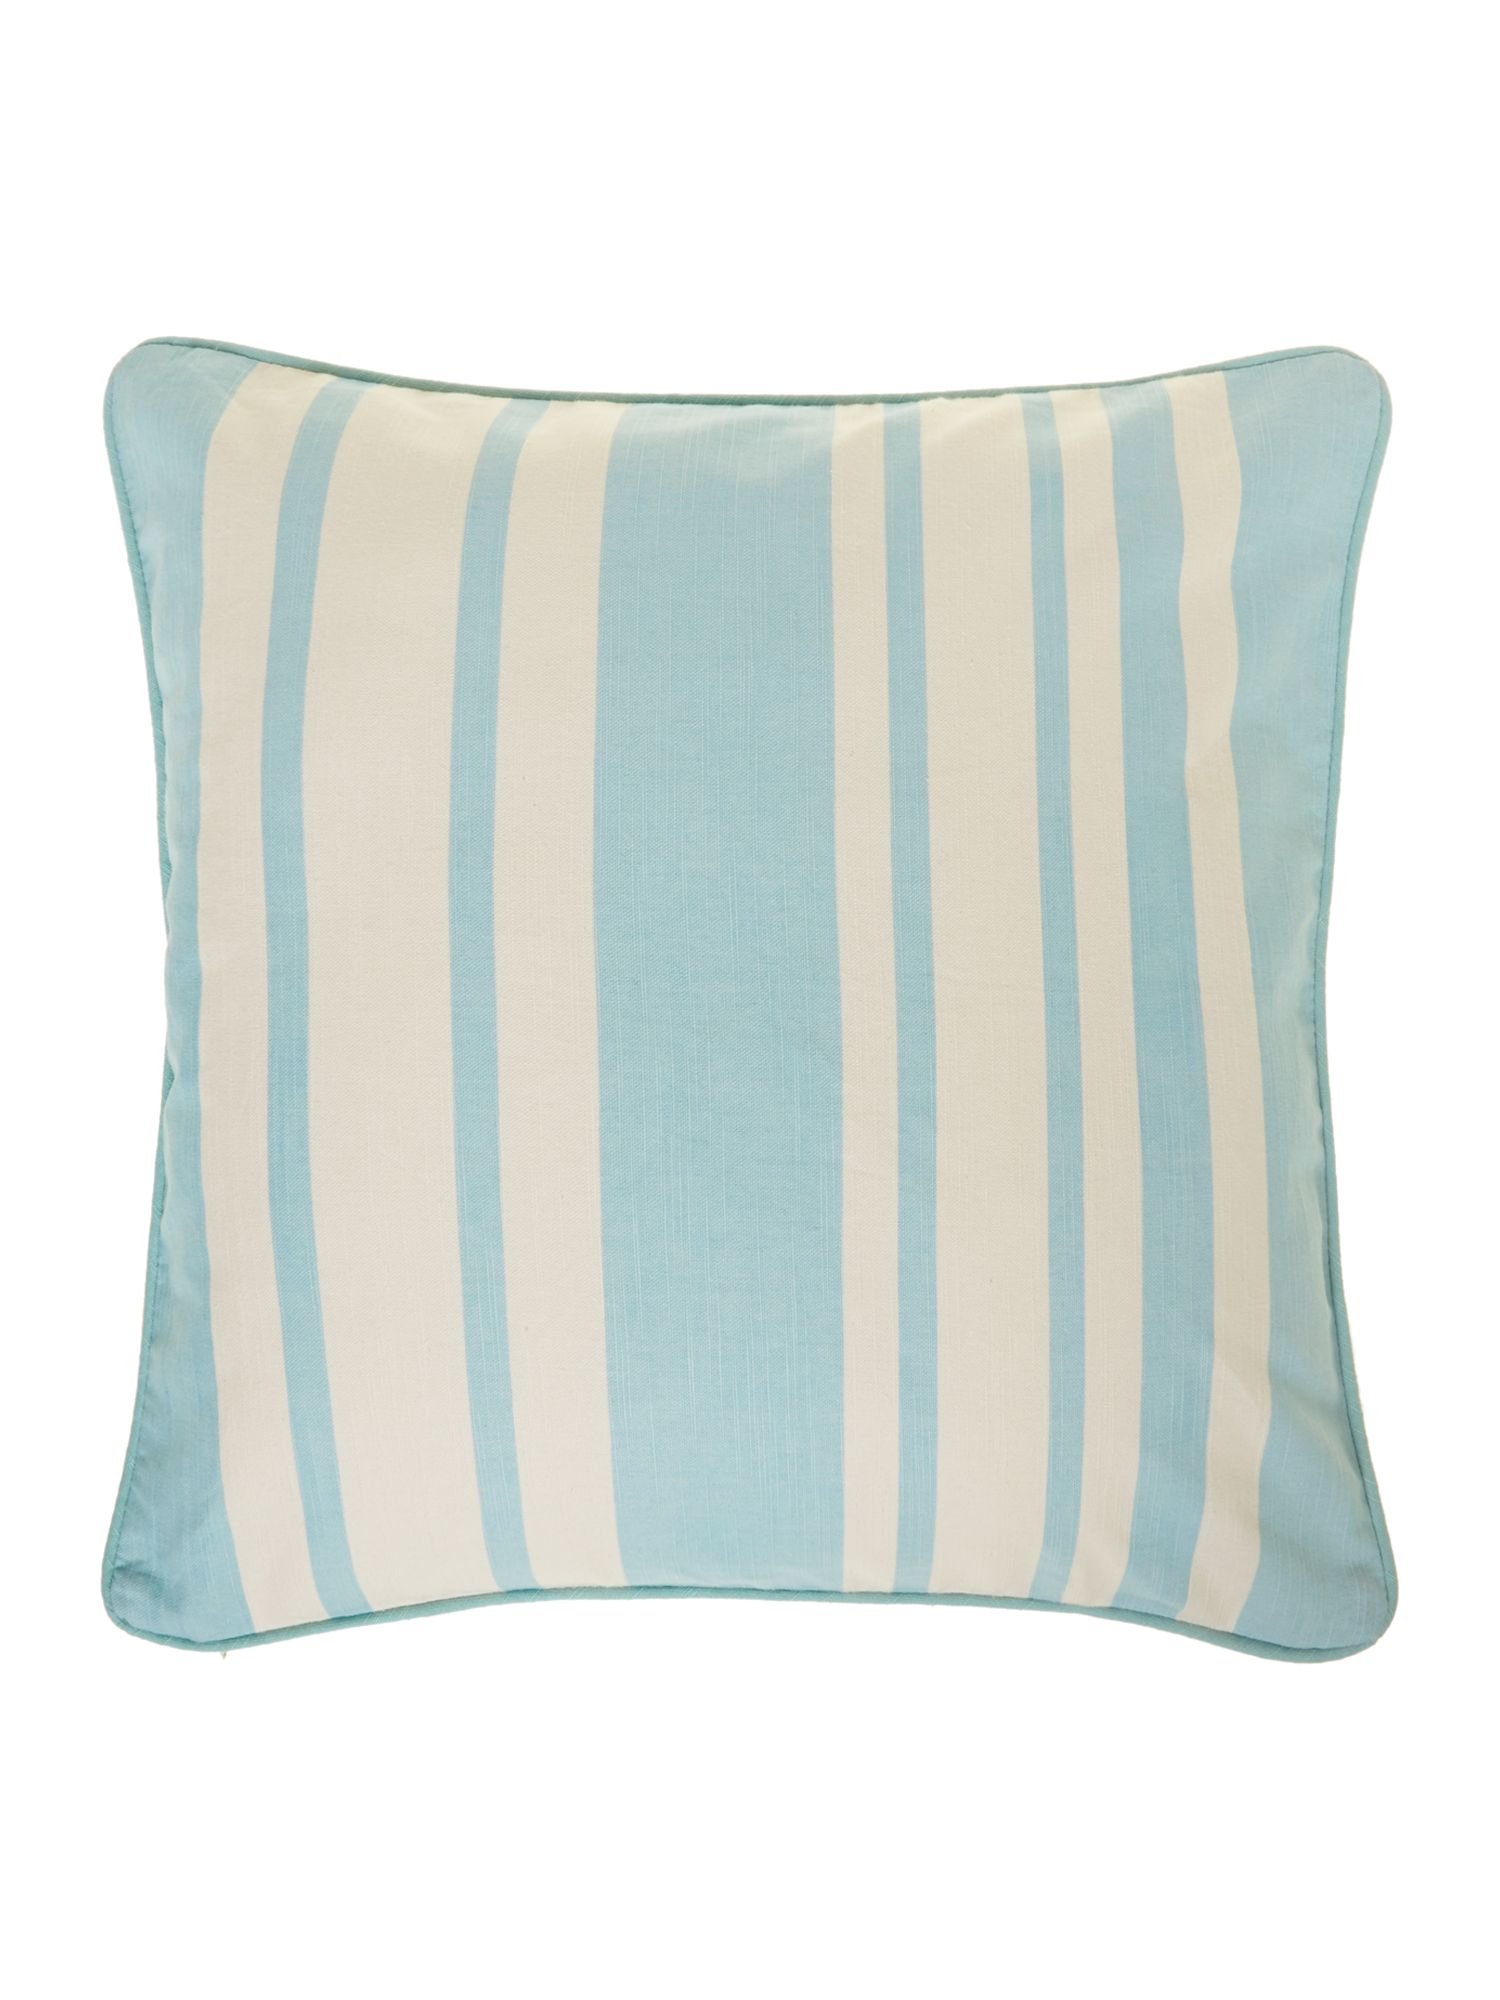 Stripe cotton cushion, Duck egg blue